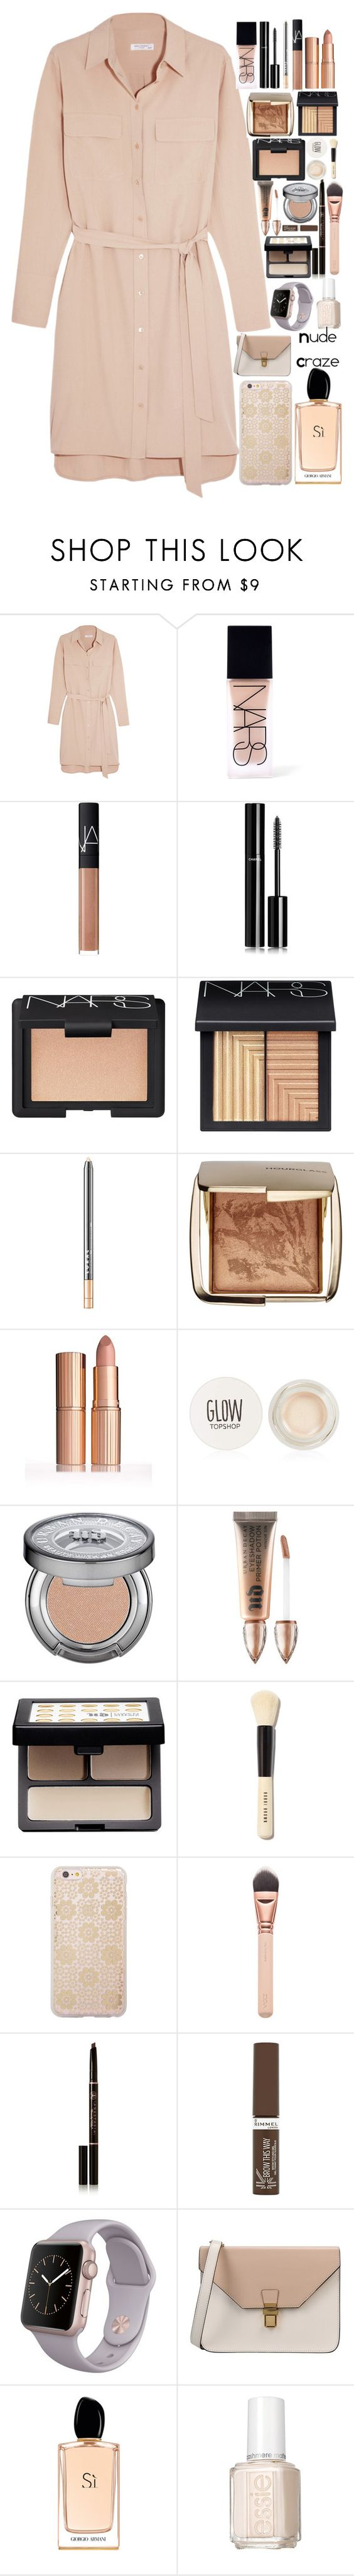 """""""Nude Craze"""" by chawy-mk ❤ liked on Polyvore featuring Equipment, NARS Cosmetics, Chanel, LORAC, Hourglass Cosmetics, Topshop, Urban Decay, Bobbi Brown Cosmetics, Sonix and Anastasia Beverly Hills"""